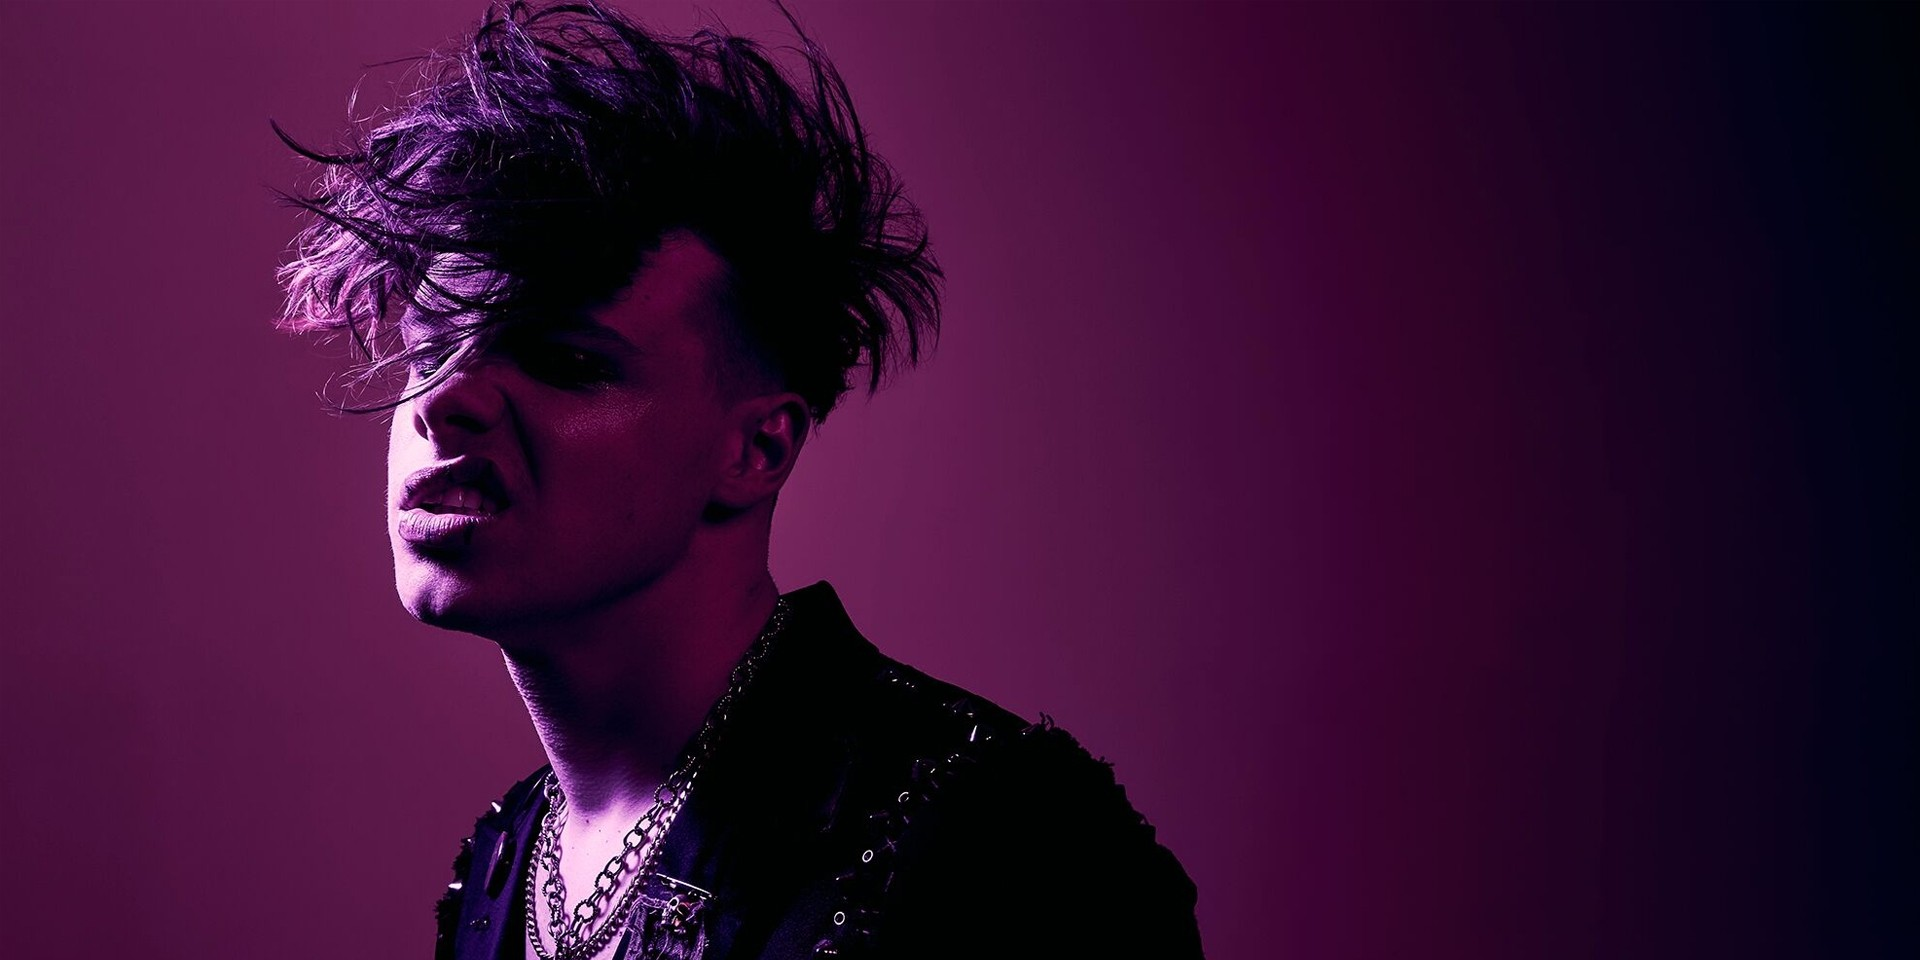 YUNGBLUD cancels Asia tour